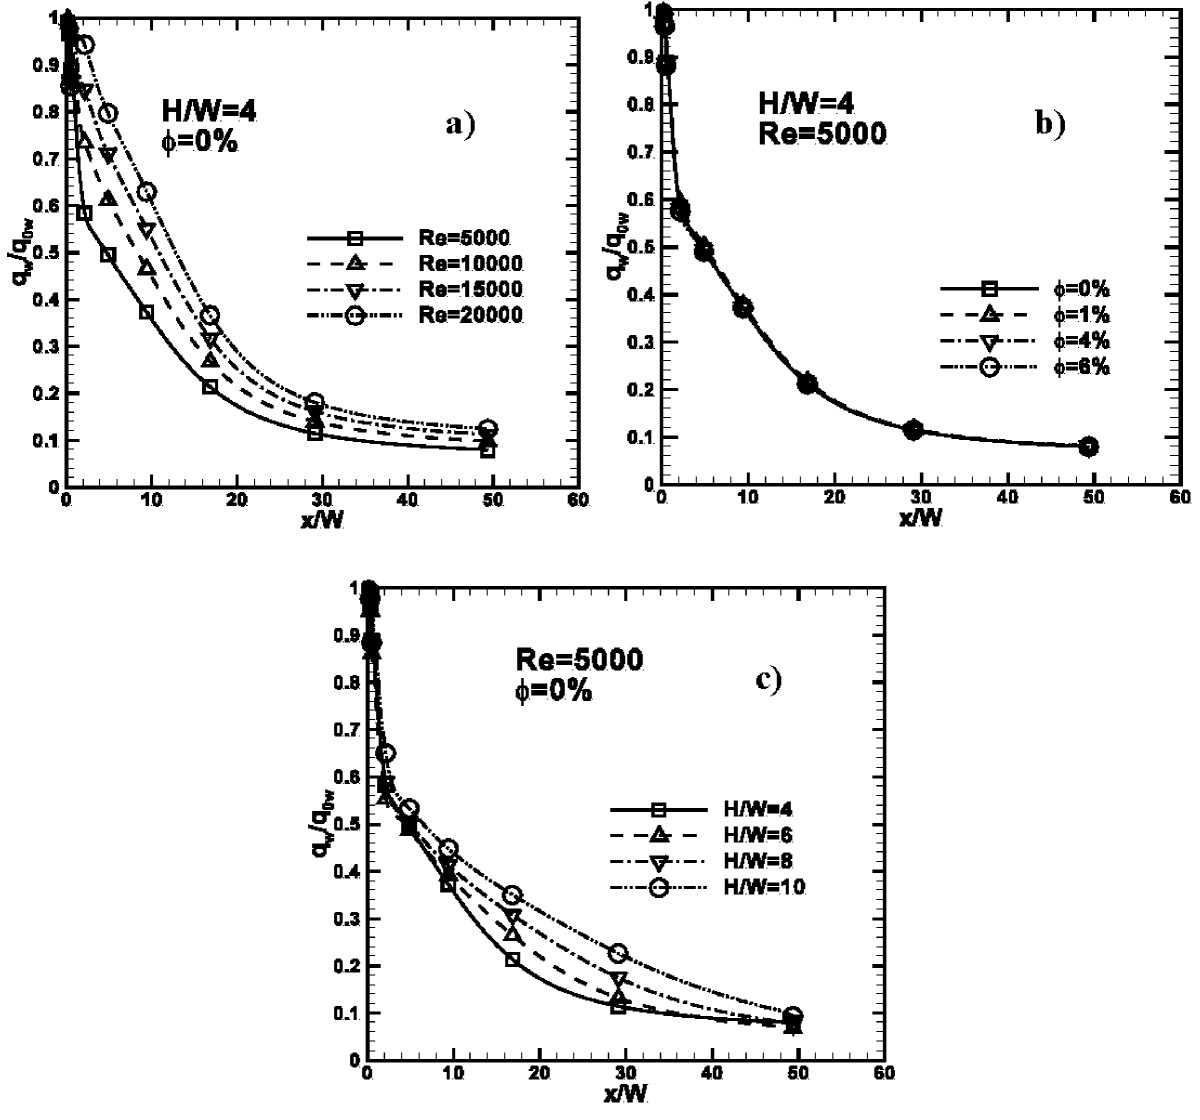 http://static-content.springer.com/image/art%3A10.1186%2F1556-276X-6-188/MediaObjects/11671_2010_Article_127_Fig7_HTML.jpg